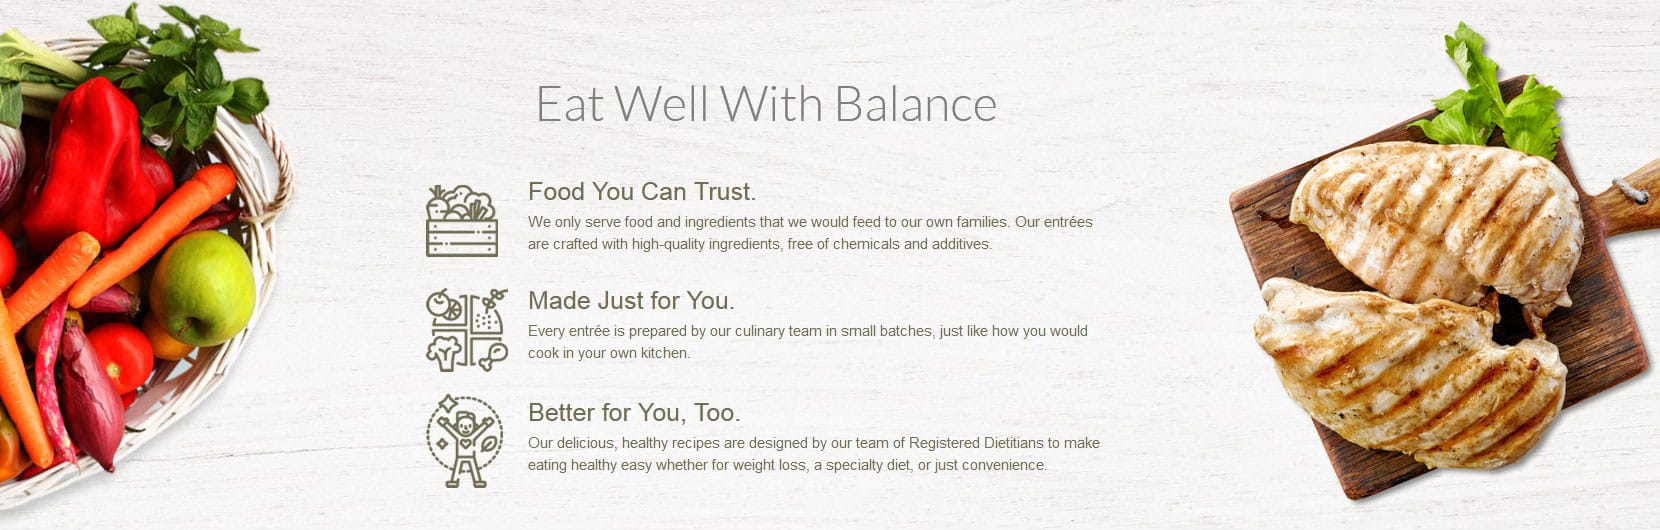 image of balance by bistromd features